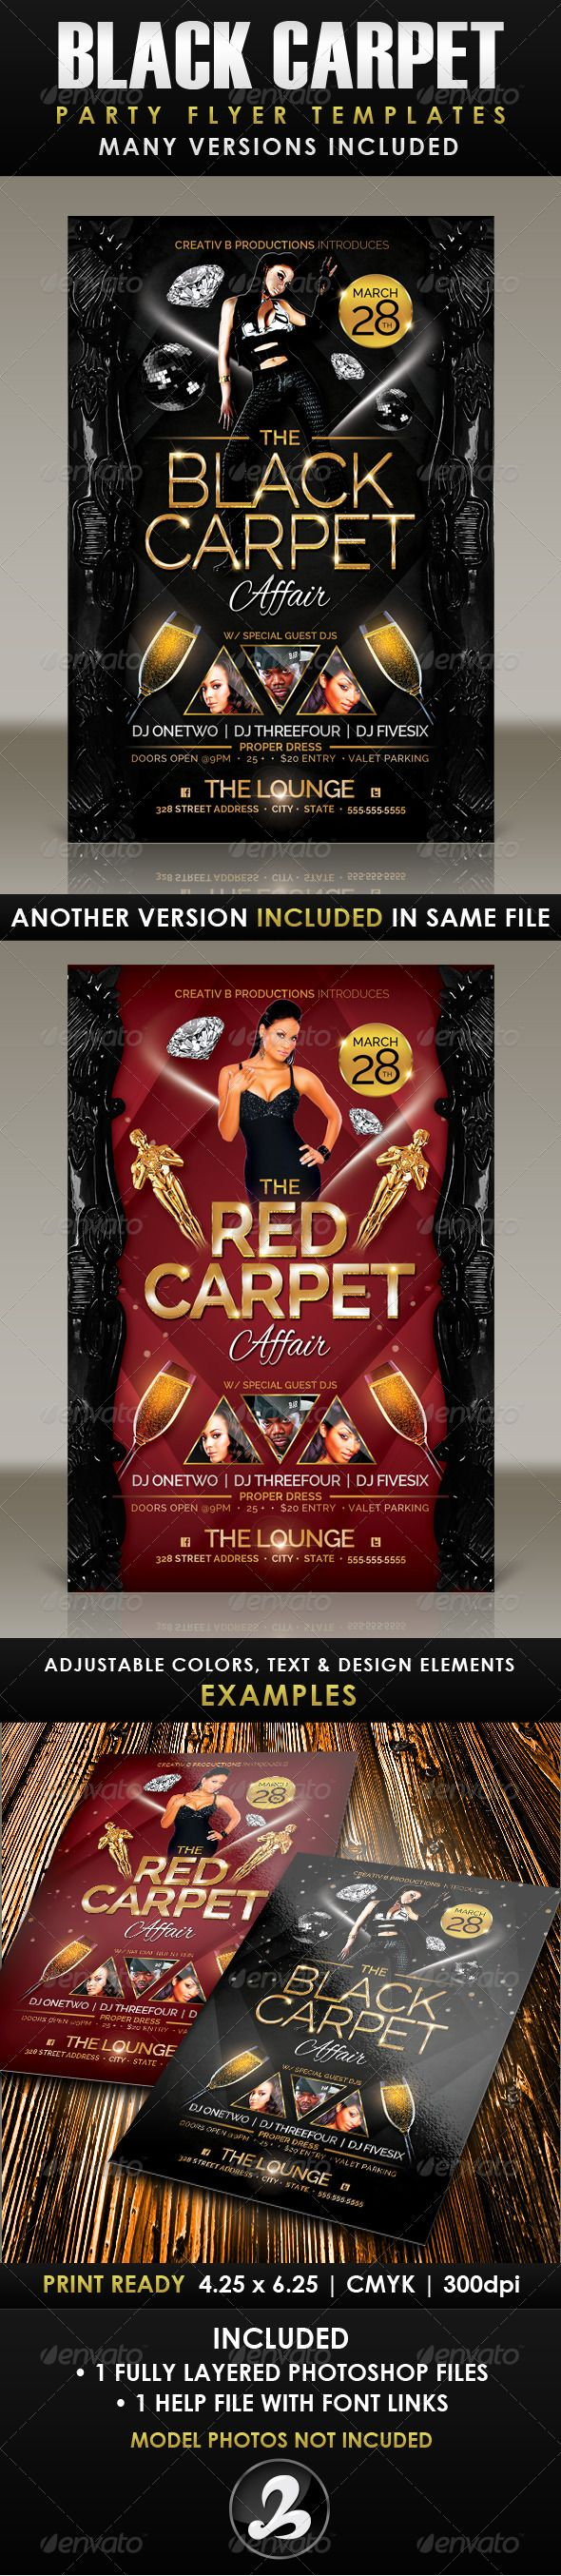 Black Carpet Party Flyer Template  Flyer Template Party Flyer